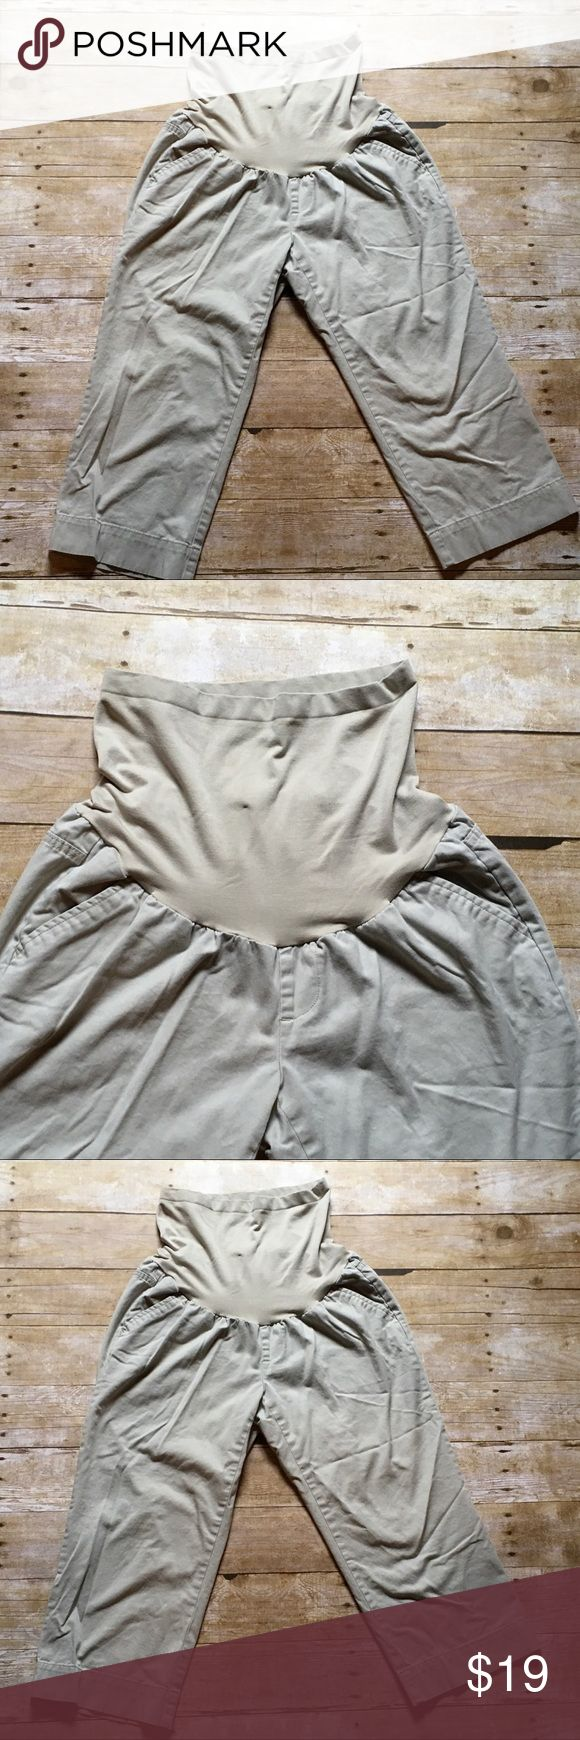 """Oh Baby! By Motherhood Maternity Capri pants ❤️Description: full panel, 4 pockets ❤️Condition: excellent used ❤️Brand: Oh Baby! by Motherhood Maternity ❤️Size: medium ❤️Color(s): khaki ❤️Measurements: --laying flat--      Rise  14"""" including panel      Inseam  20.5""""      Leg opening 9"""" at bottom hem ❤️Notes: 💕Bundle & save!💕 💕All reasonable offers are considered!💕 Oh Baby by Motherhood Pants Capris"""